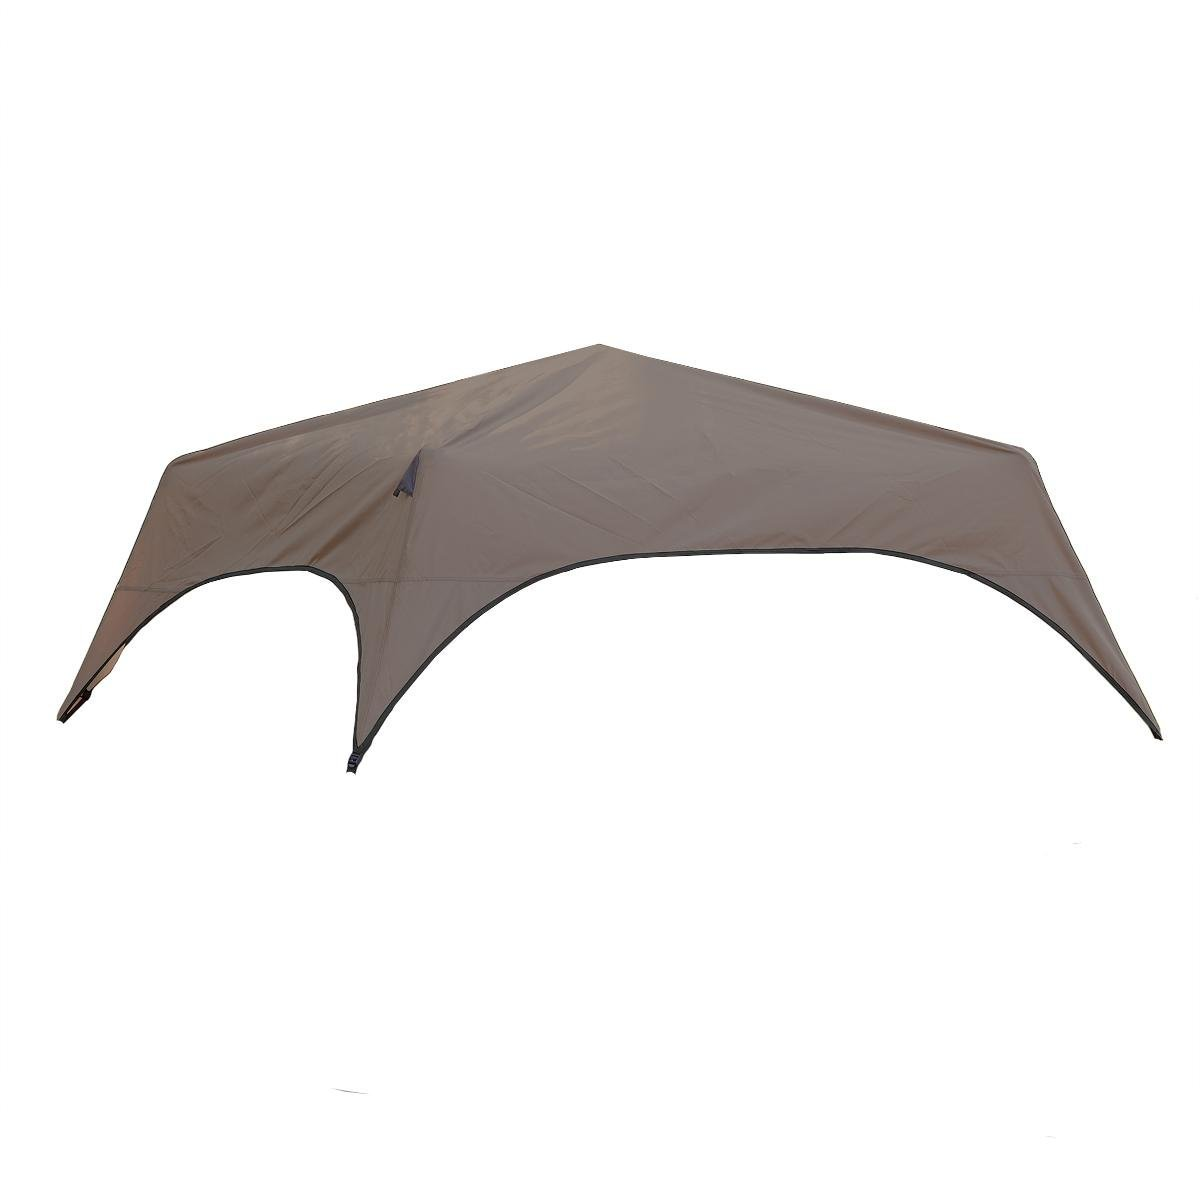 6-Person Instant Tent Rainfly Accessory, USA, Brand Coleman